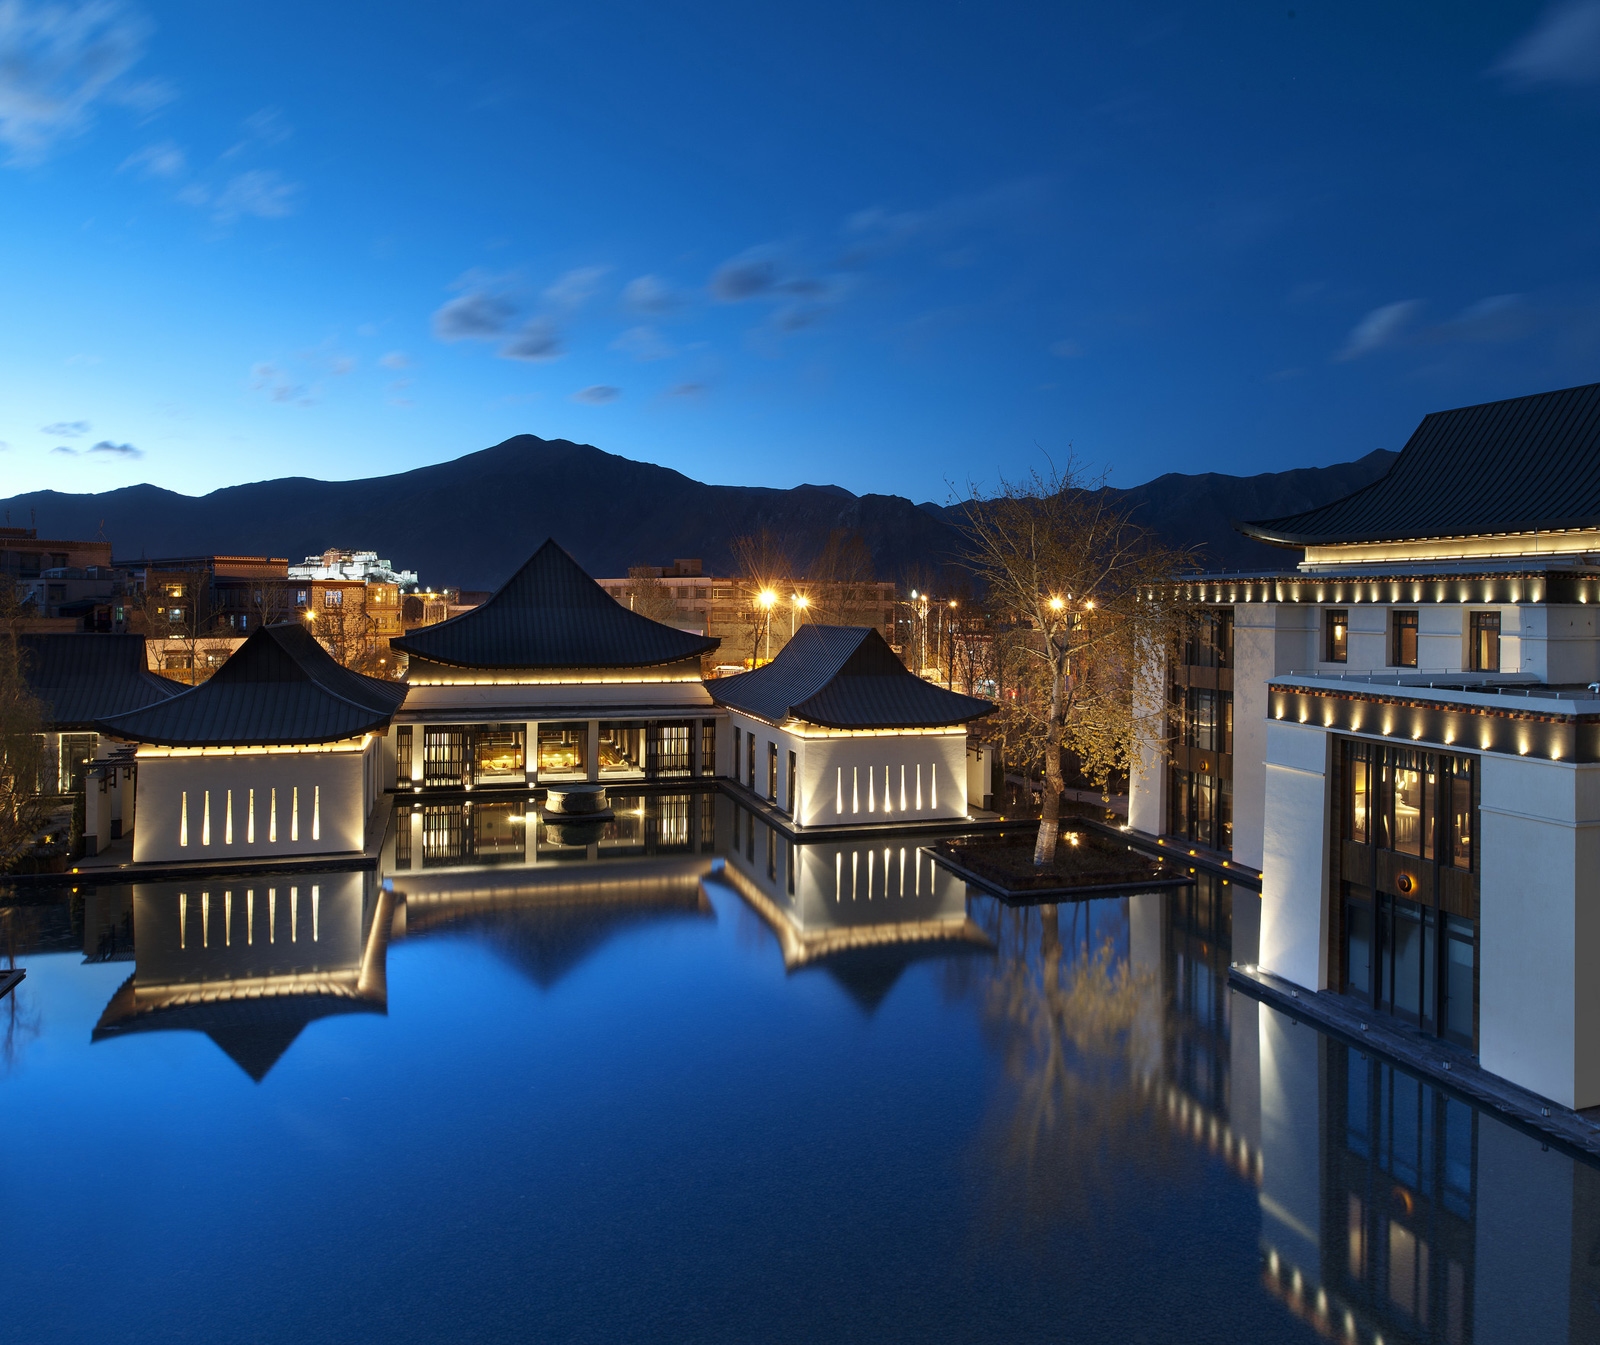 St regis lhasa tibet 39 s first five star hotel extravaganzi for Best hotels worldwide